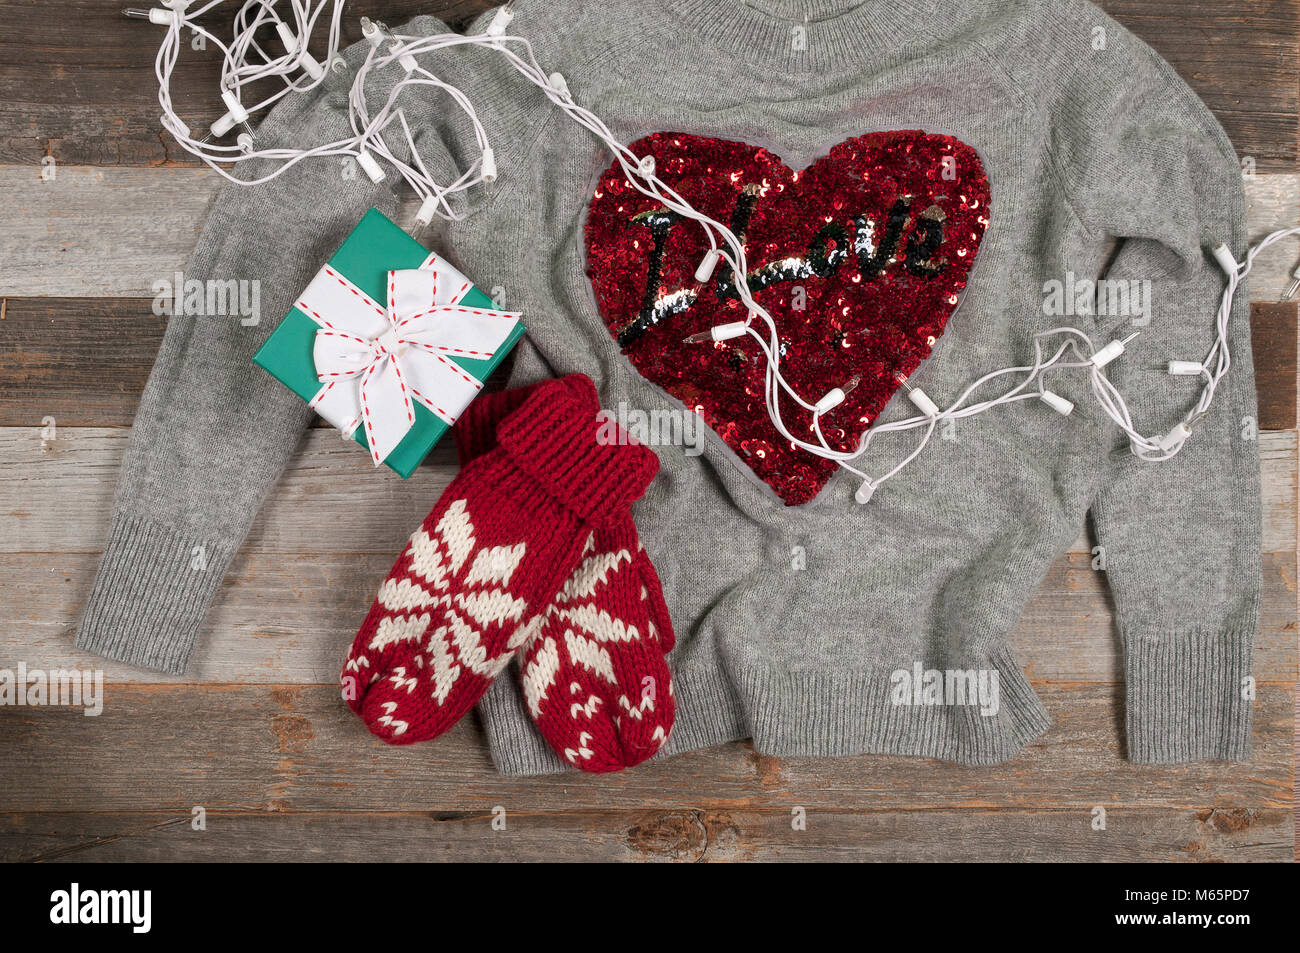 Christmas presents laid on a wooden table background. Winter clothes warm sweater and knitted mittens near gift - Stock Image